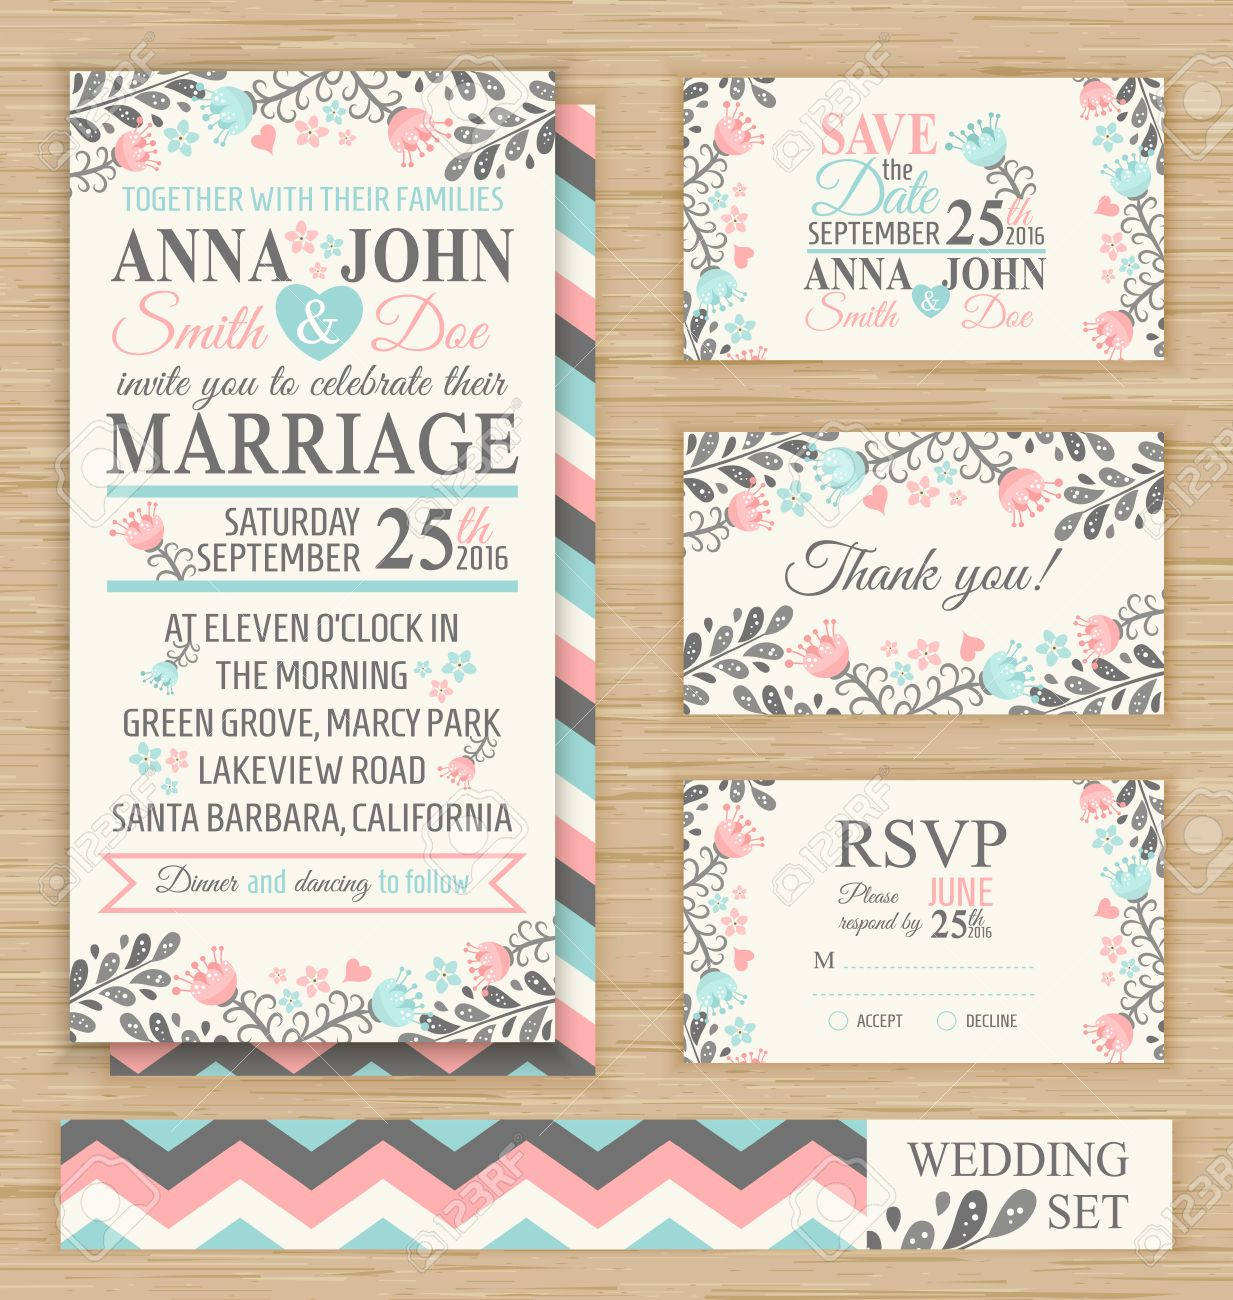 Wedding invitation template thank you card save the date rsvp wedding invitation template thank you card save the date rsvp card wedding stopboris Choice Image